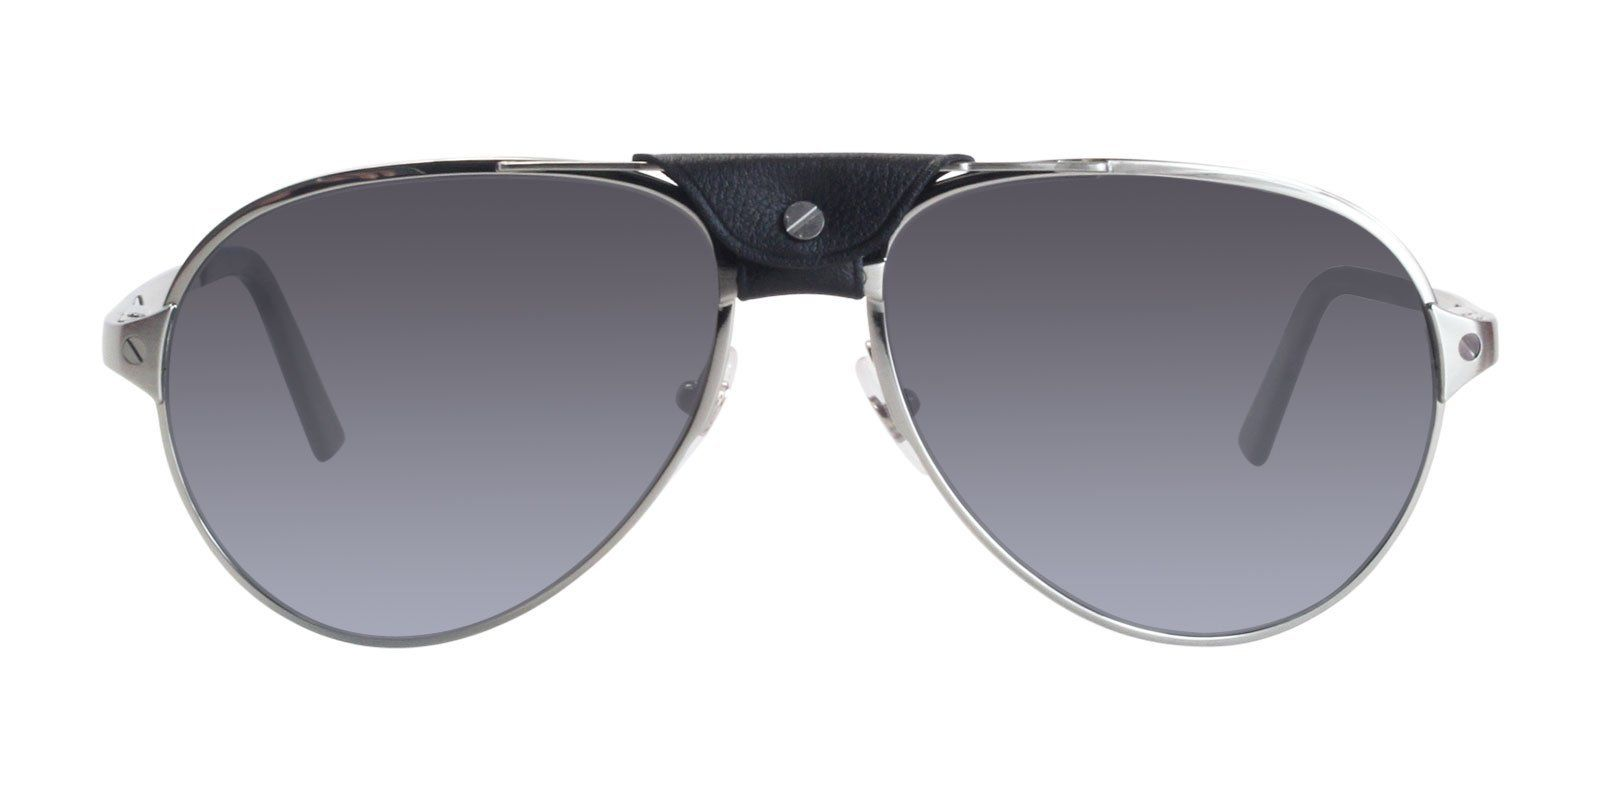 2659e2b1cdf Cartier - Santos de Cartier CT0034S - 005 sunglasses in 2018 ...